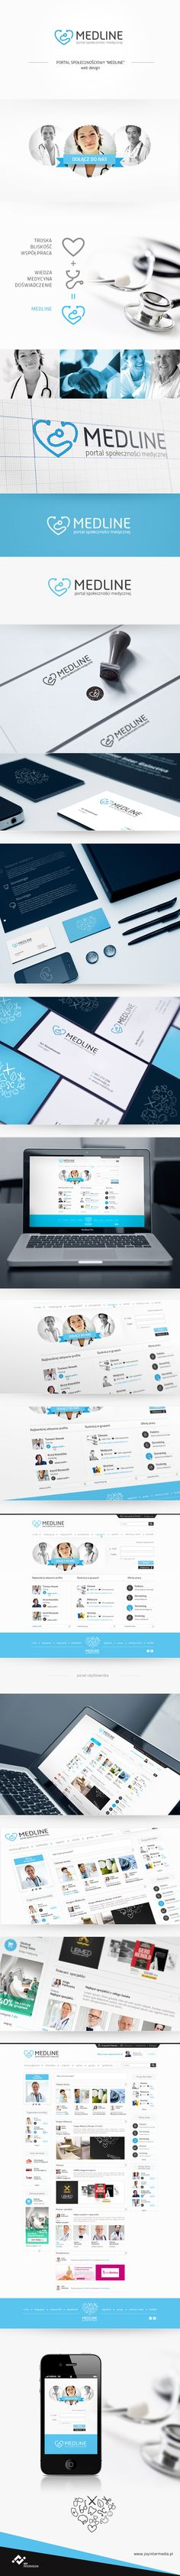 Medical UI with more class than half the Internet !?!  Medline by Milena Włodarczyk, via #Behance #Design #Branding